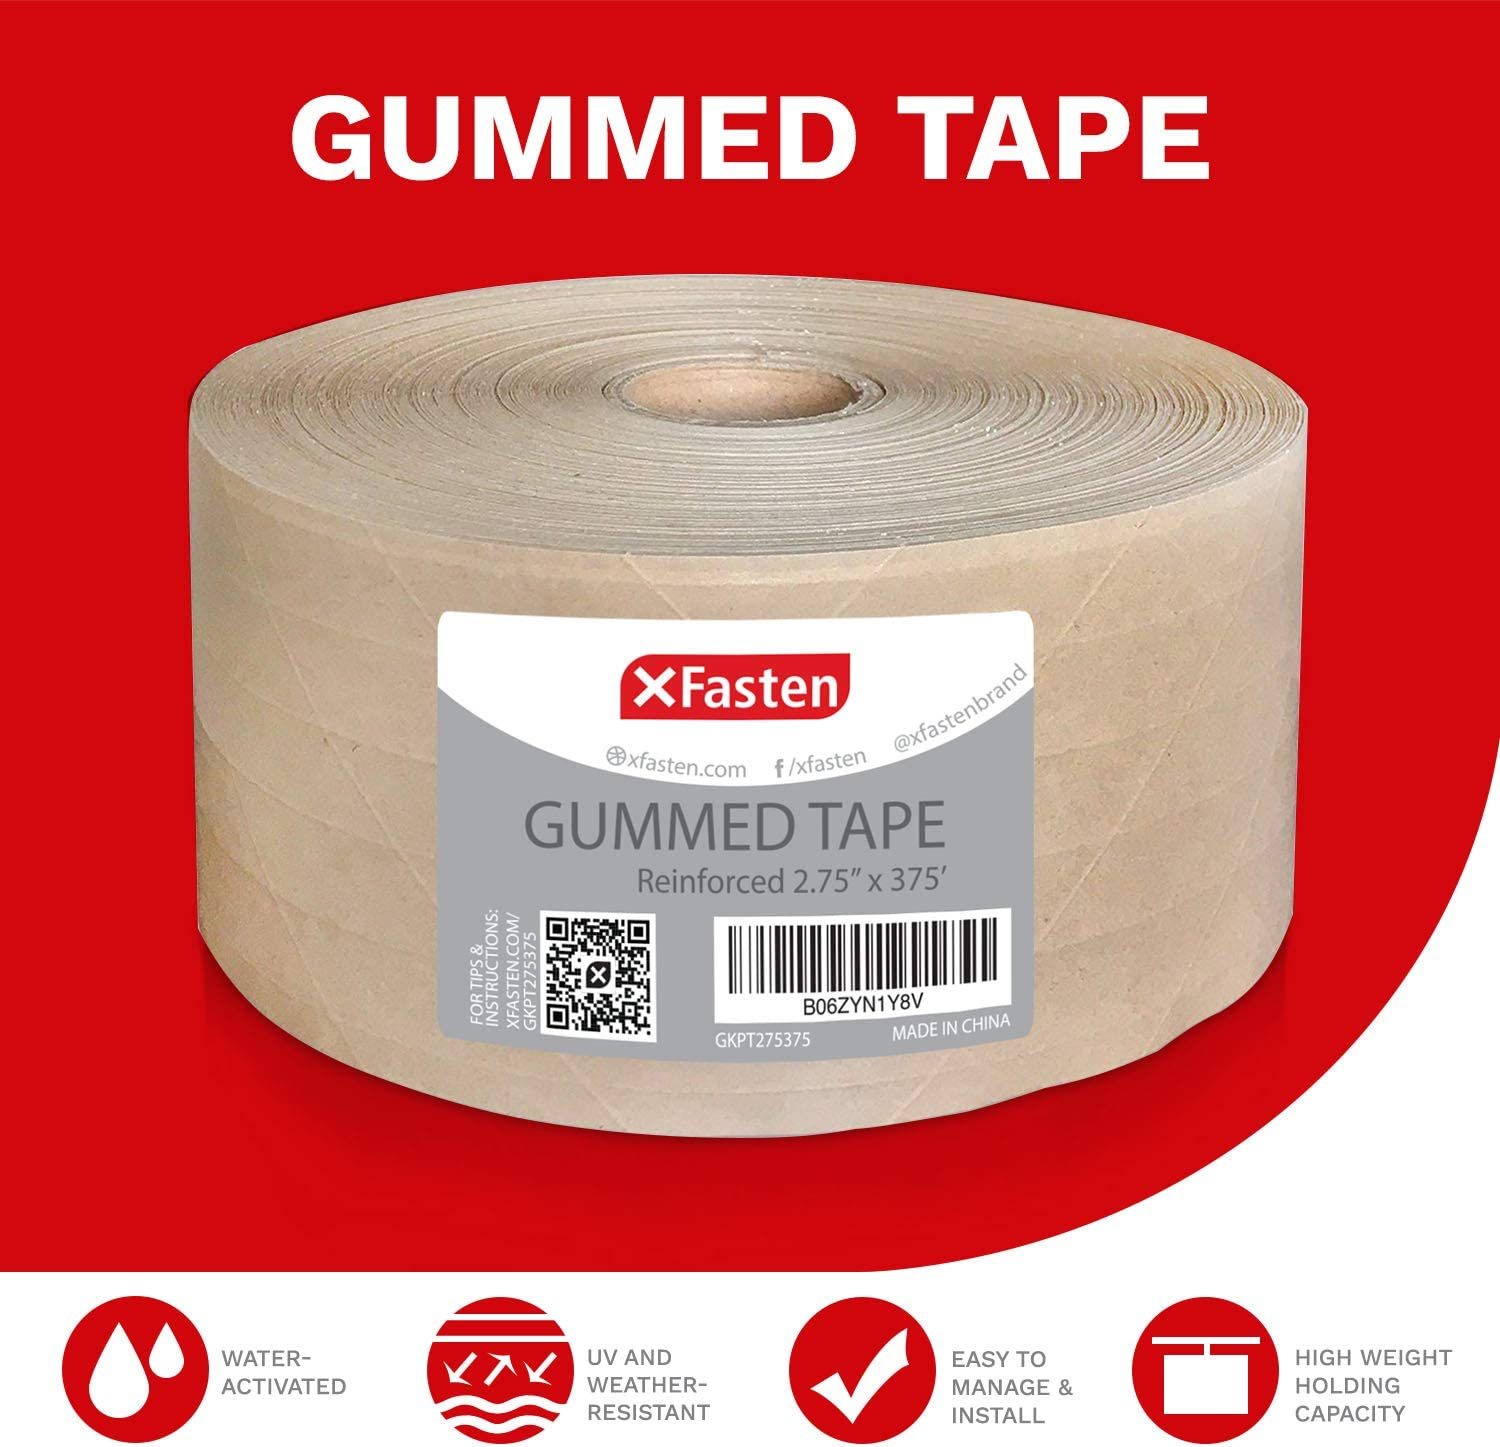 XFasten Reinforced Gummed Kraft Paper Packing Tape Water Activated Brown Carton Box Packing and Sealing Tape for Mailing and Moving with Fiberglass Backing 2.75 Inches x 375 Feet